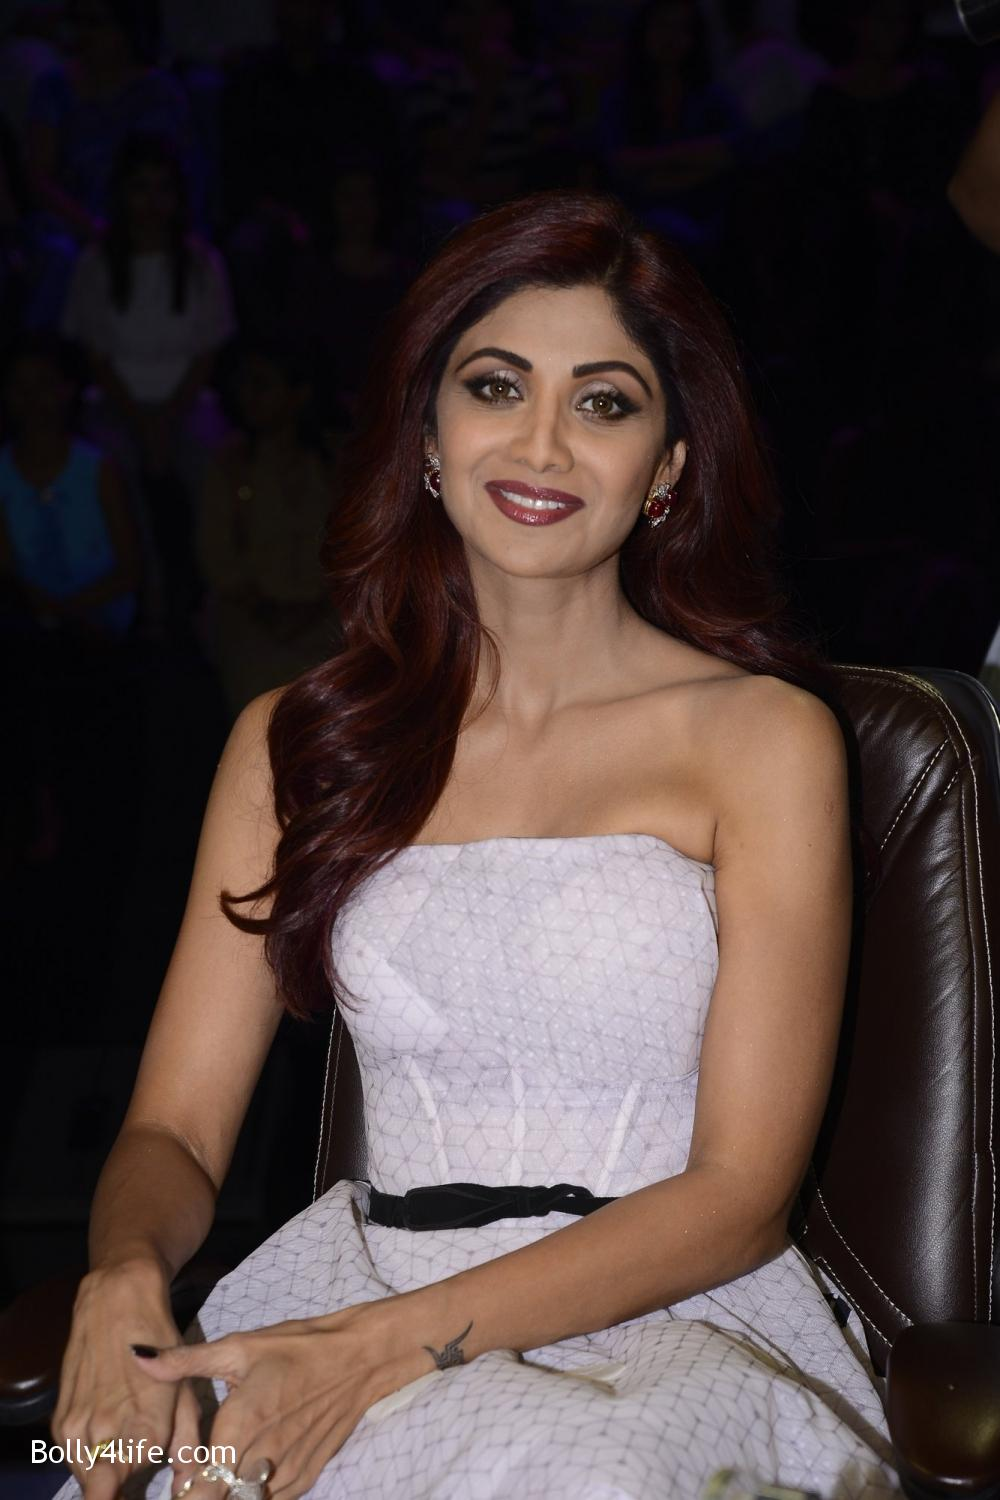 Shilpa-Shetty-during-on-the-sets-of-Sony-TV-reality-show-Super-Dancer-4.jpg